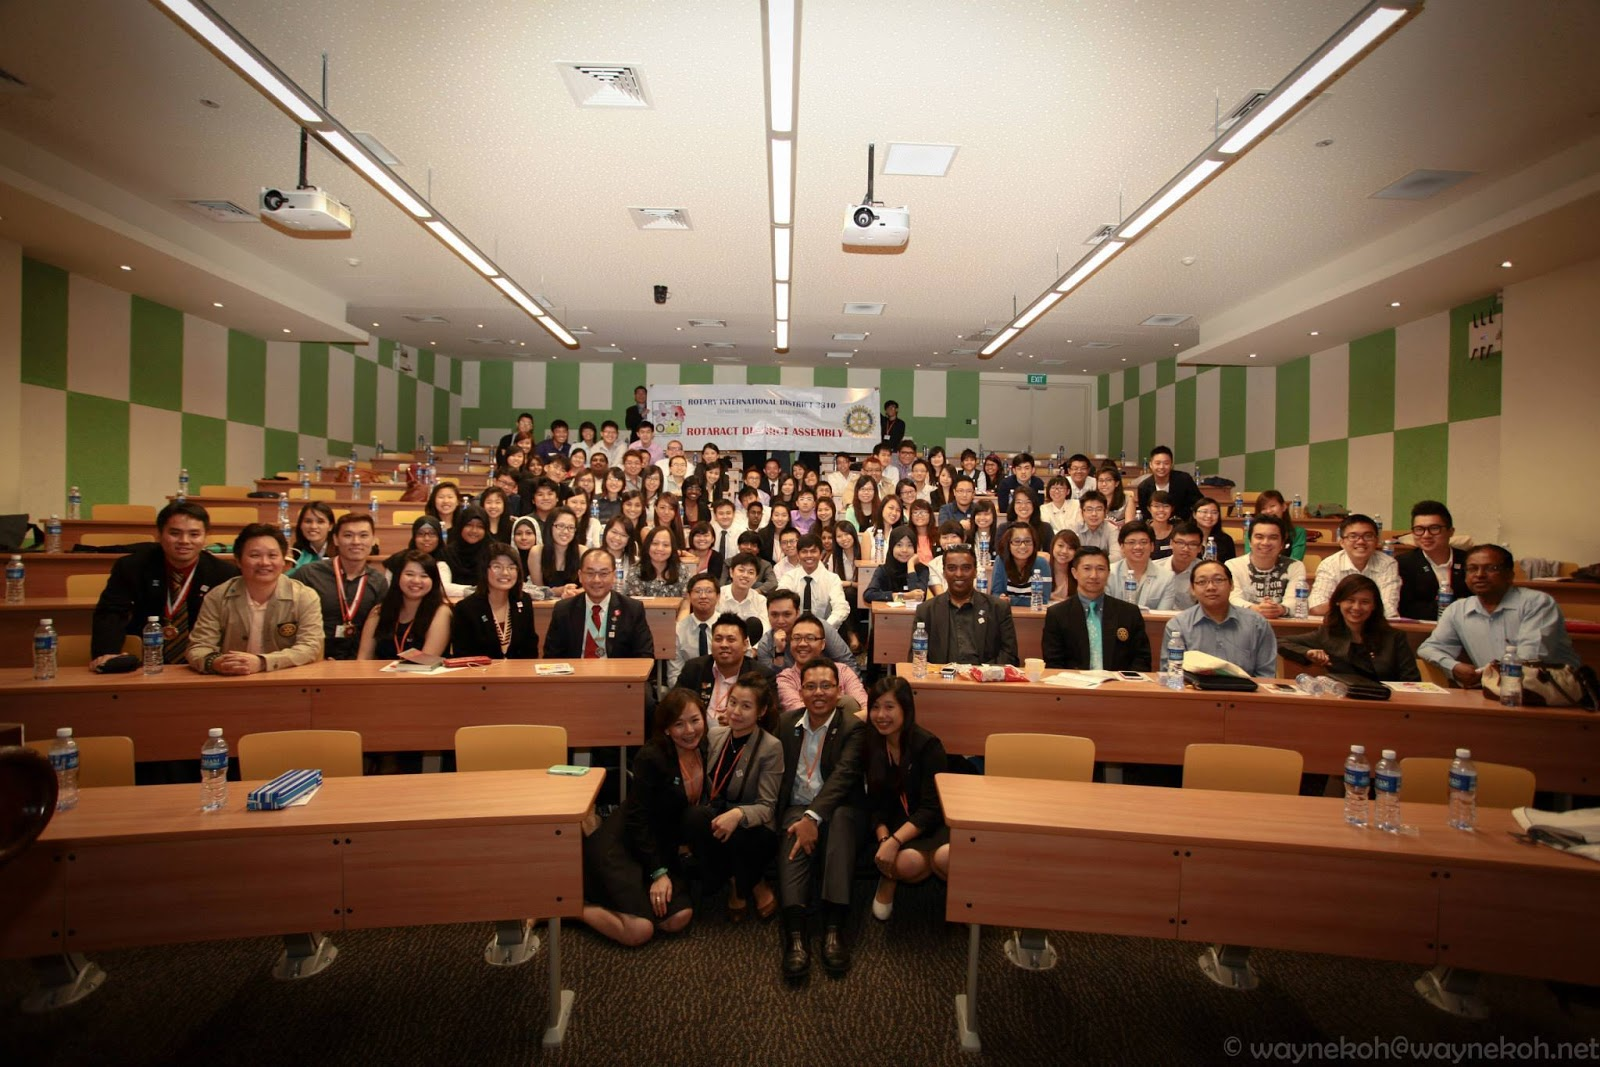 Rotaract Club of Singapore West: Rotaract District Assemby